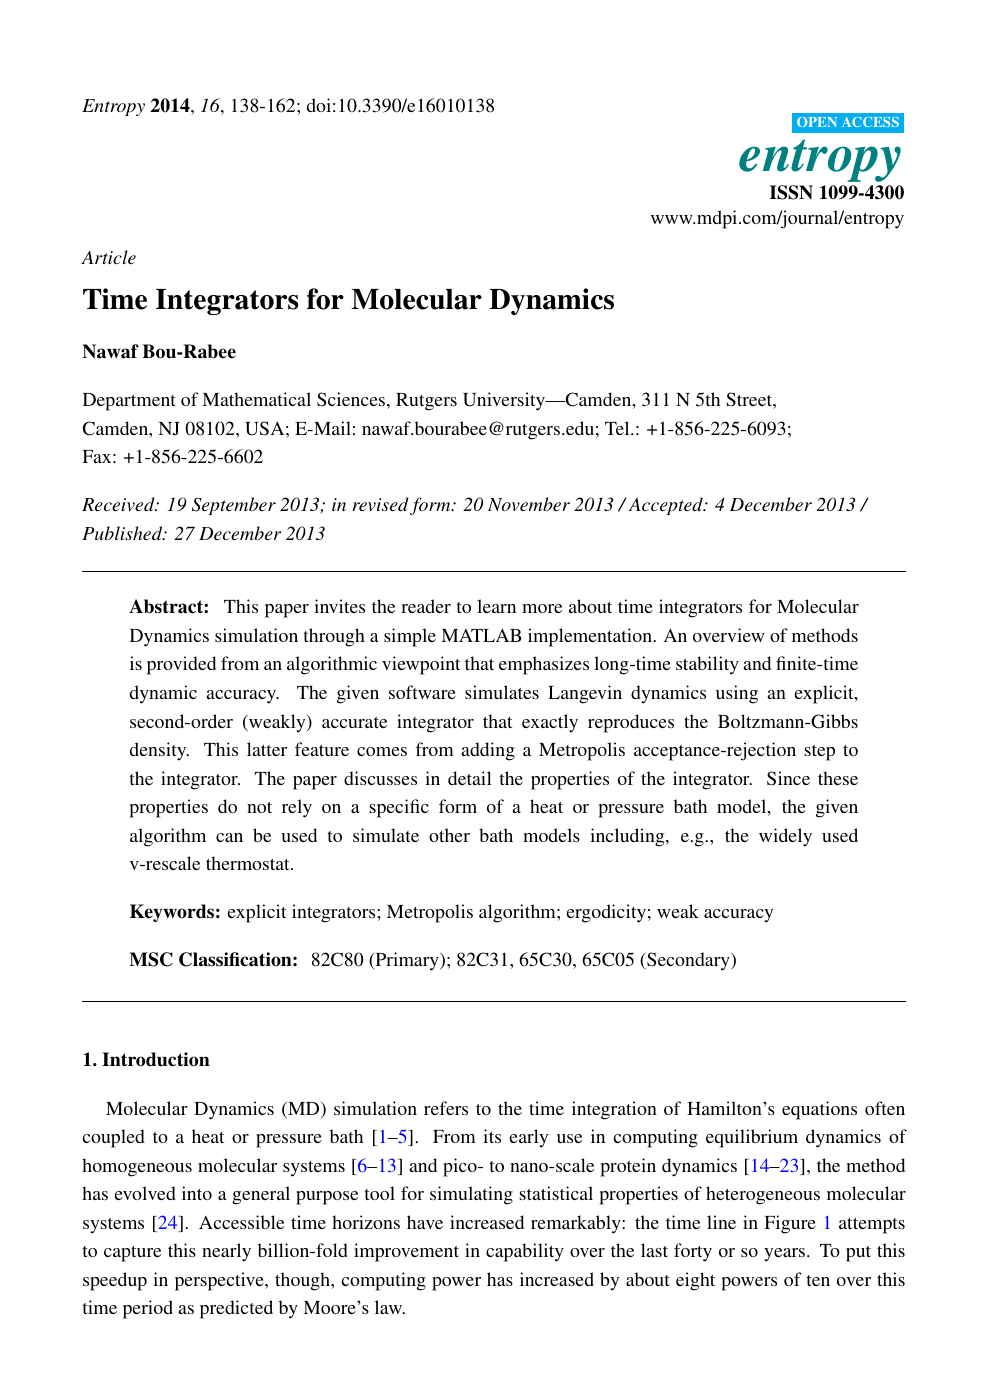 Time Integrators for Molecular Dynamics – topic of research paper in